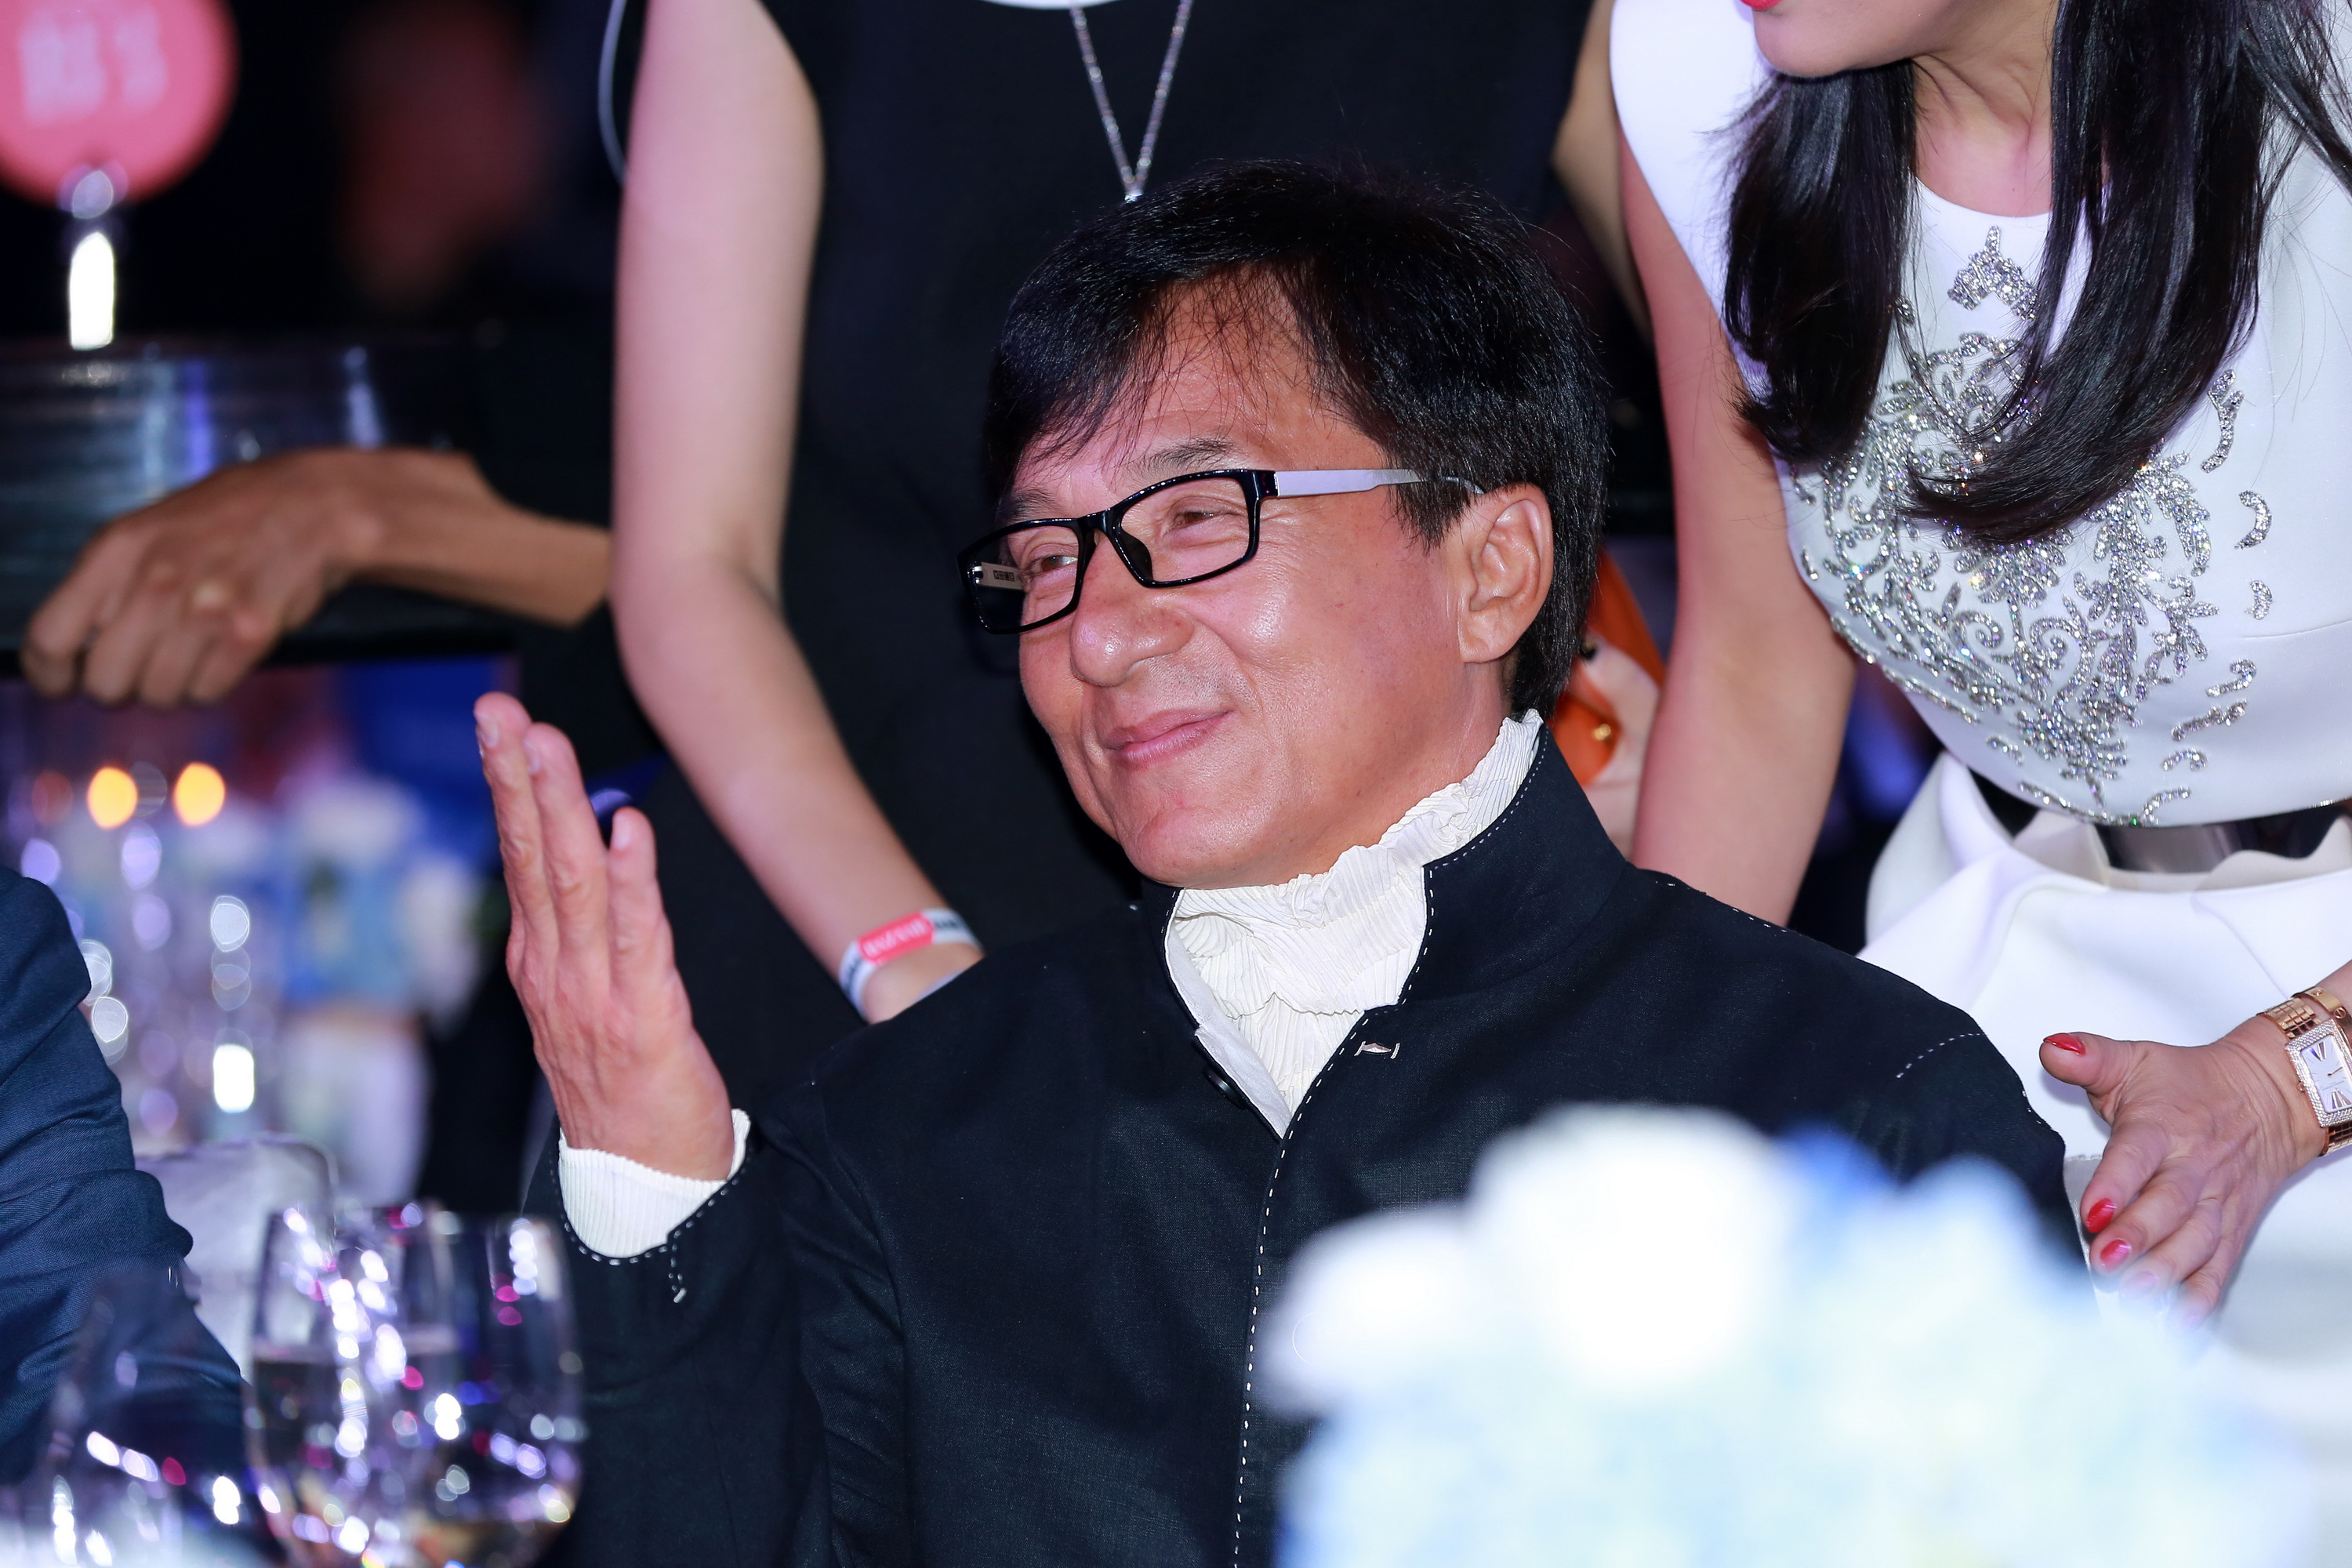 Actor Jackie Chan attends the 2014 Bazaar Charity Night in Beijing on Sept. 19, 2014